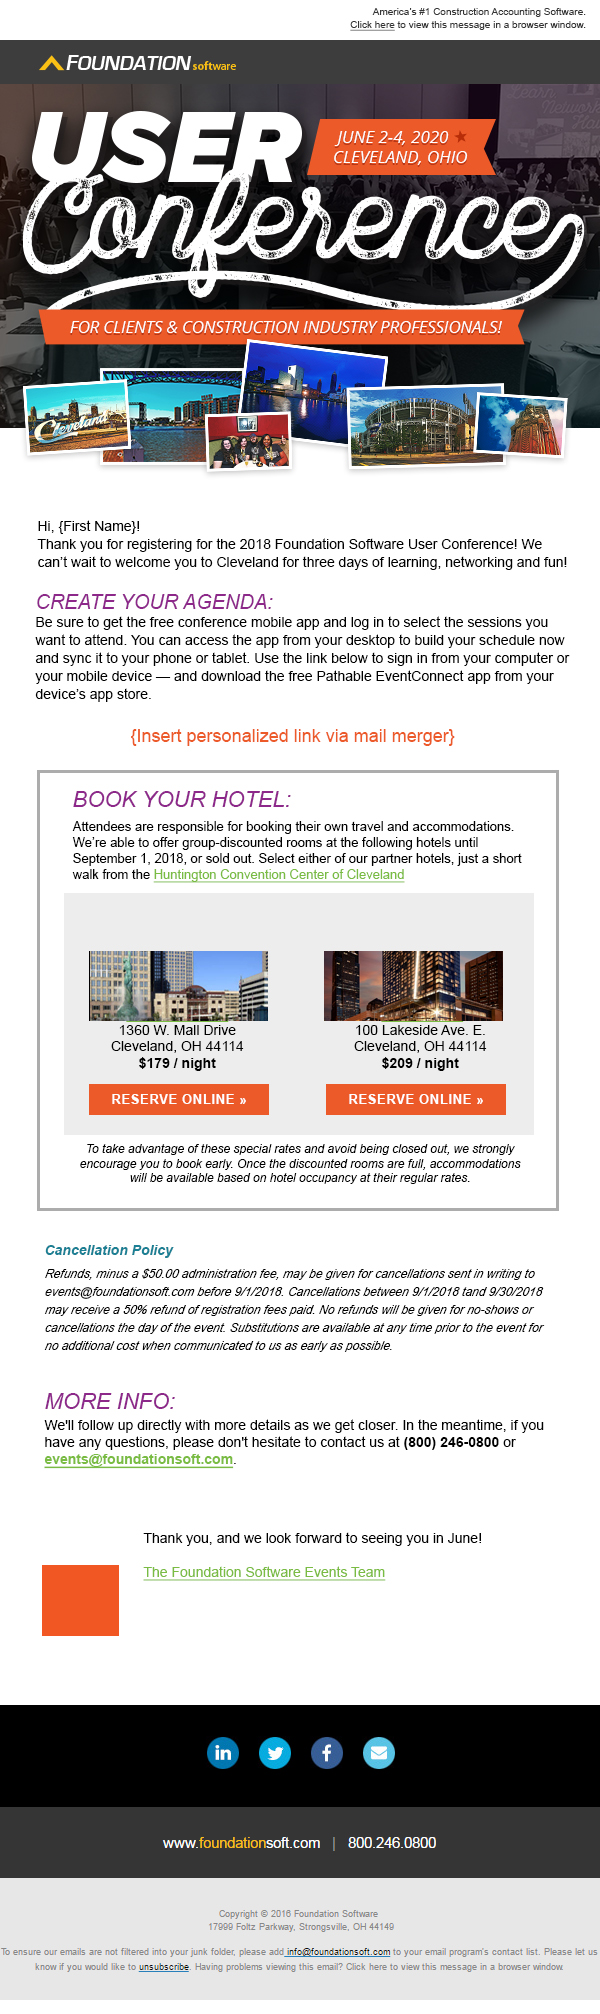 2020 User Conference Email Template 1